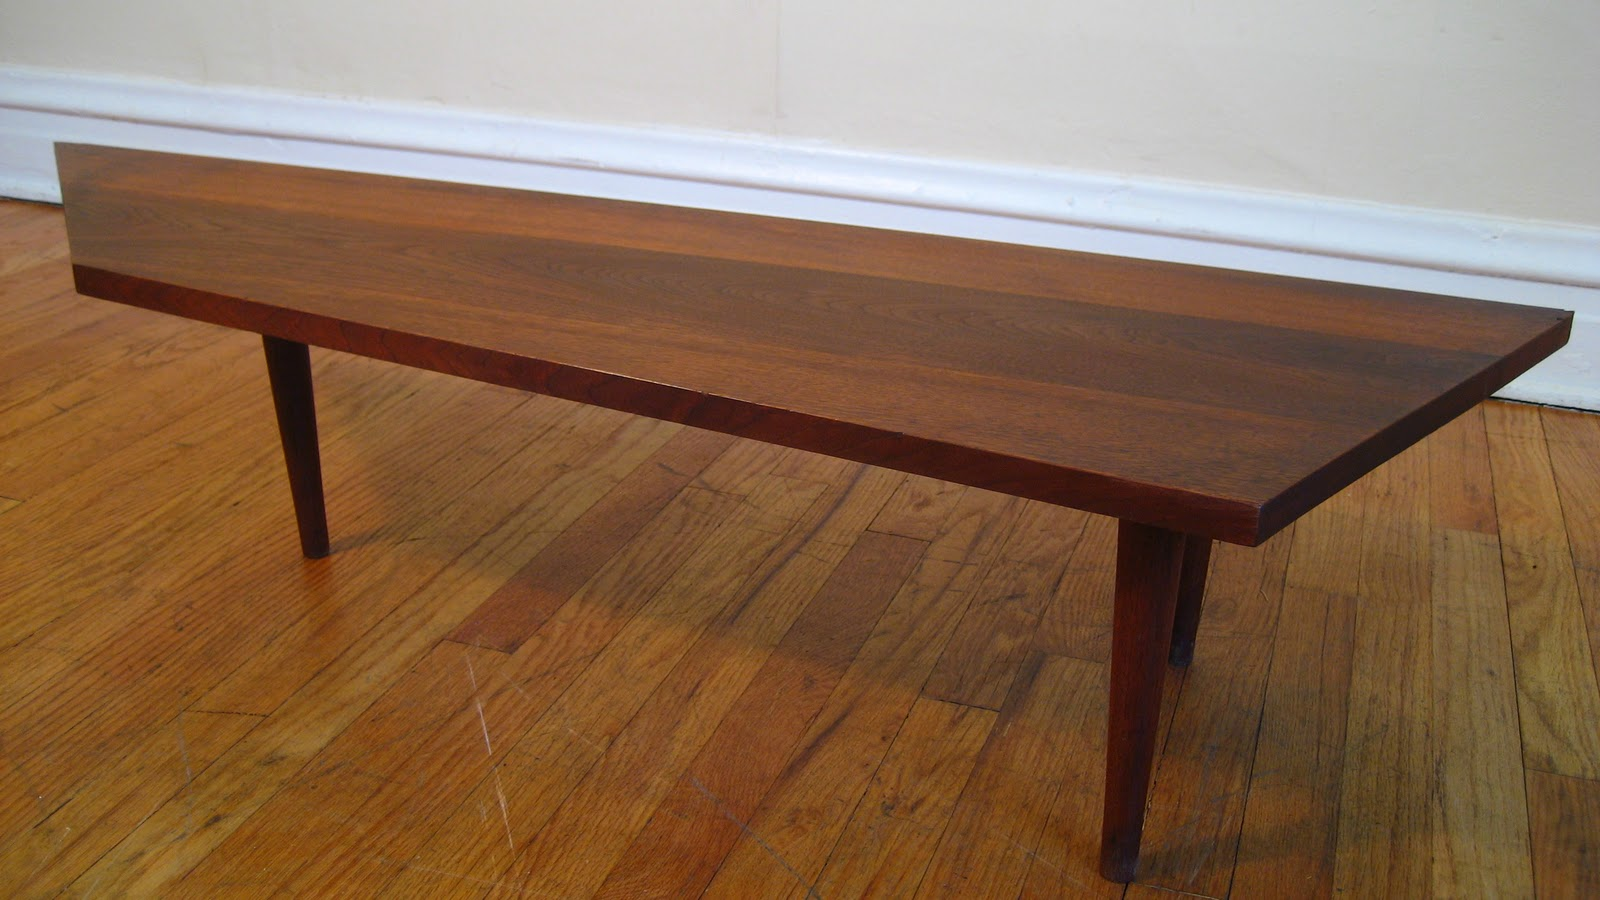 Tapered Coffee Table Legs Flatout Design Coffee Table